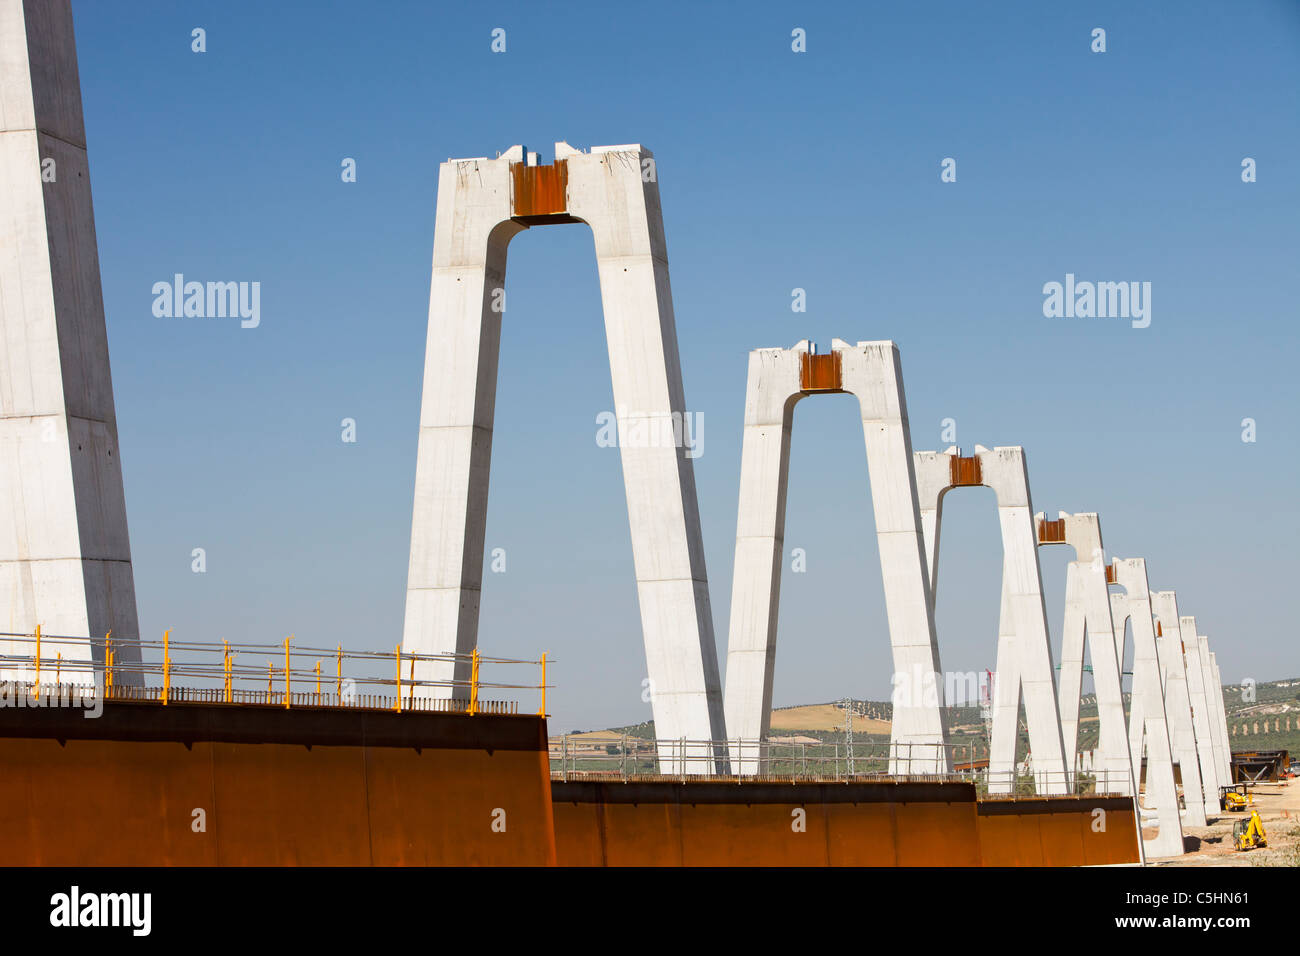 A High Speed rail link being constructed between Antequera and Granada in Andalucia, Spain. - Stock Image